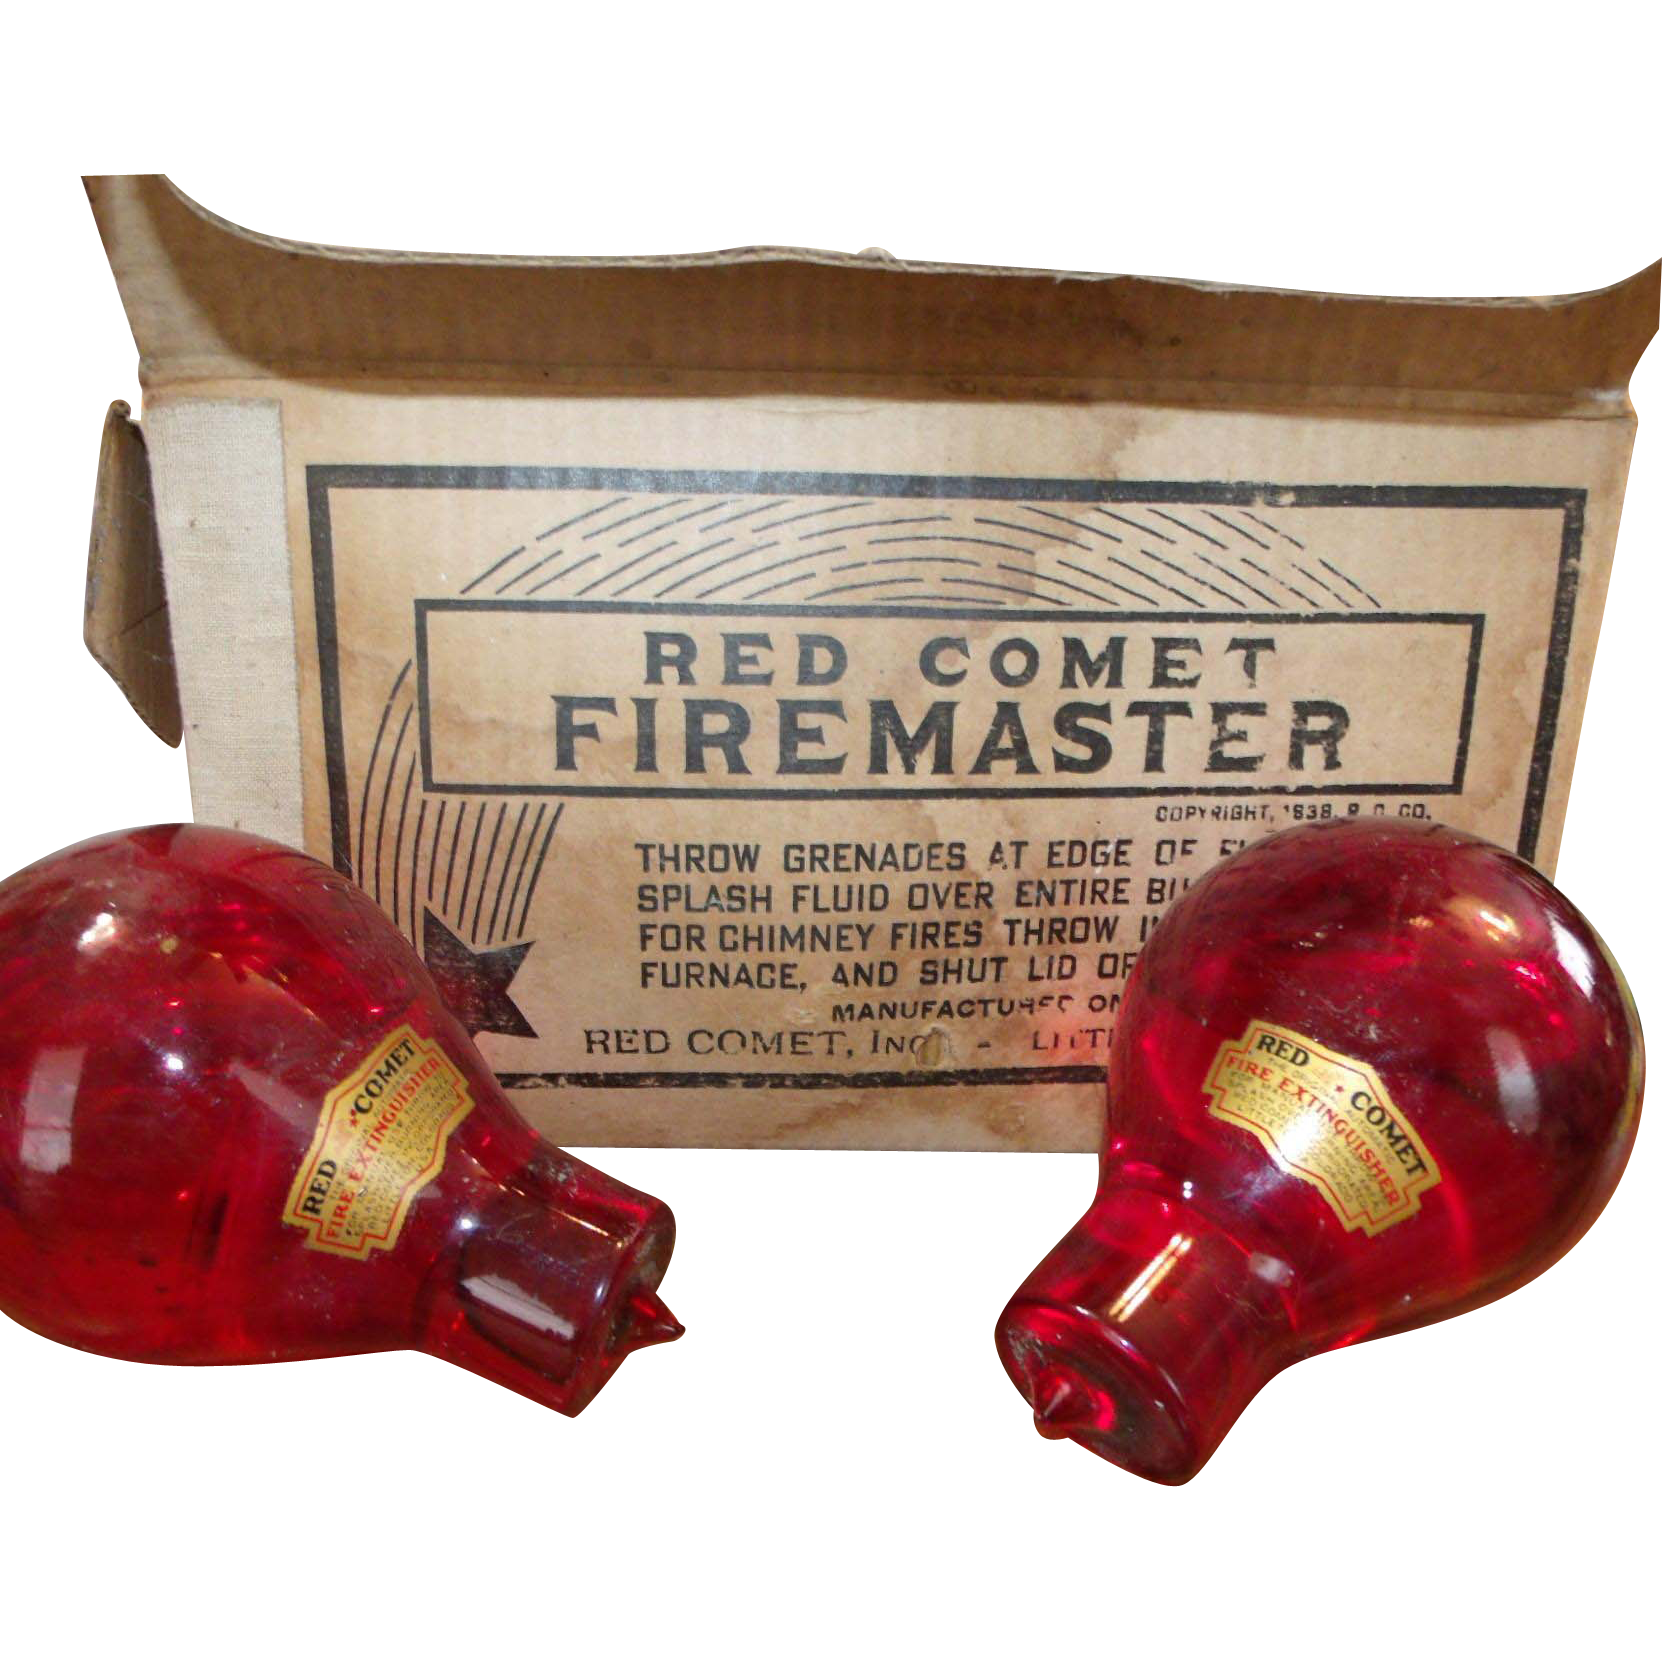 3 Red Comet Firemaster Grenades in Original Box 1938 Fire Extinguisher Red Glass